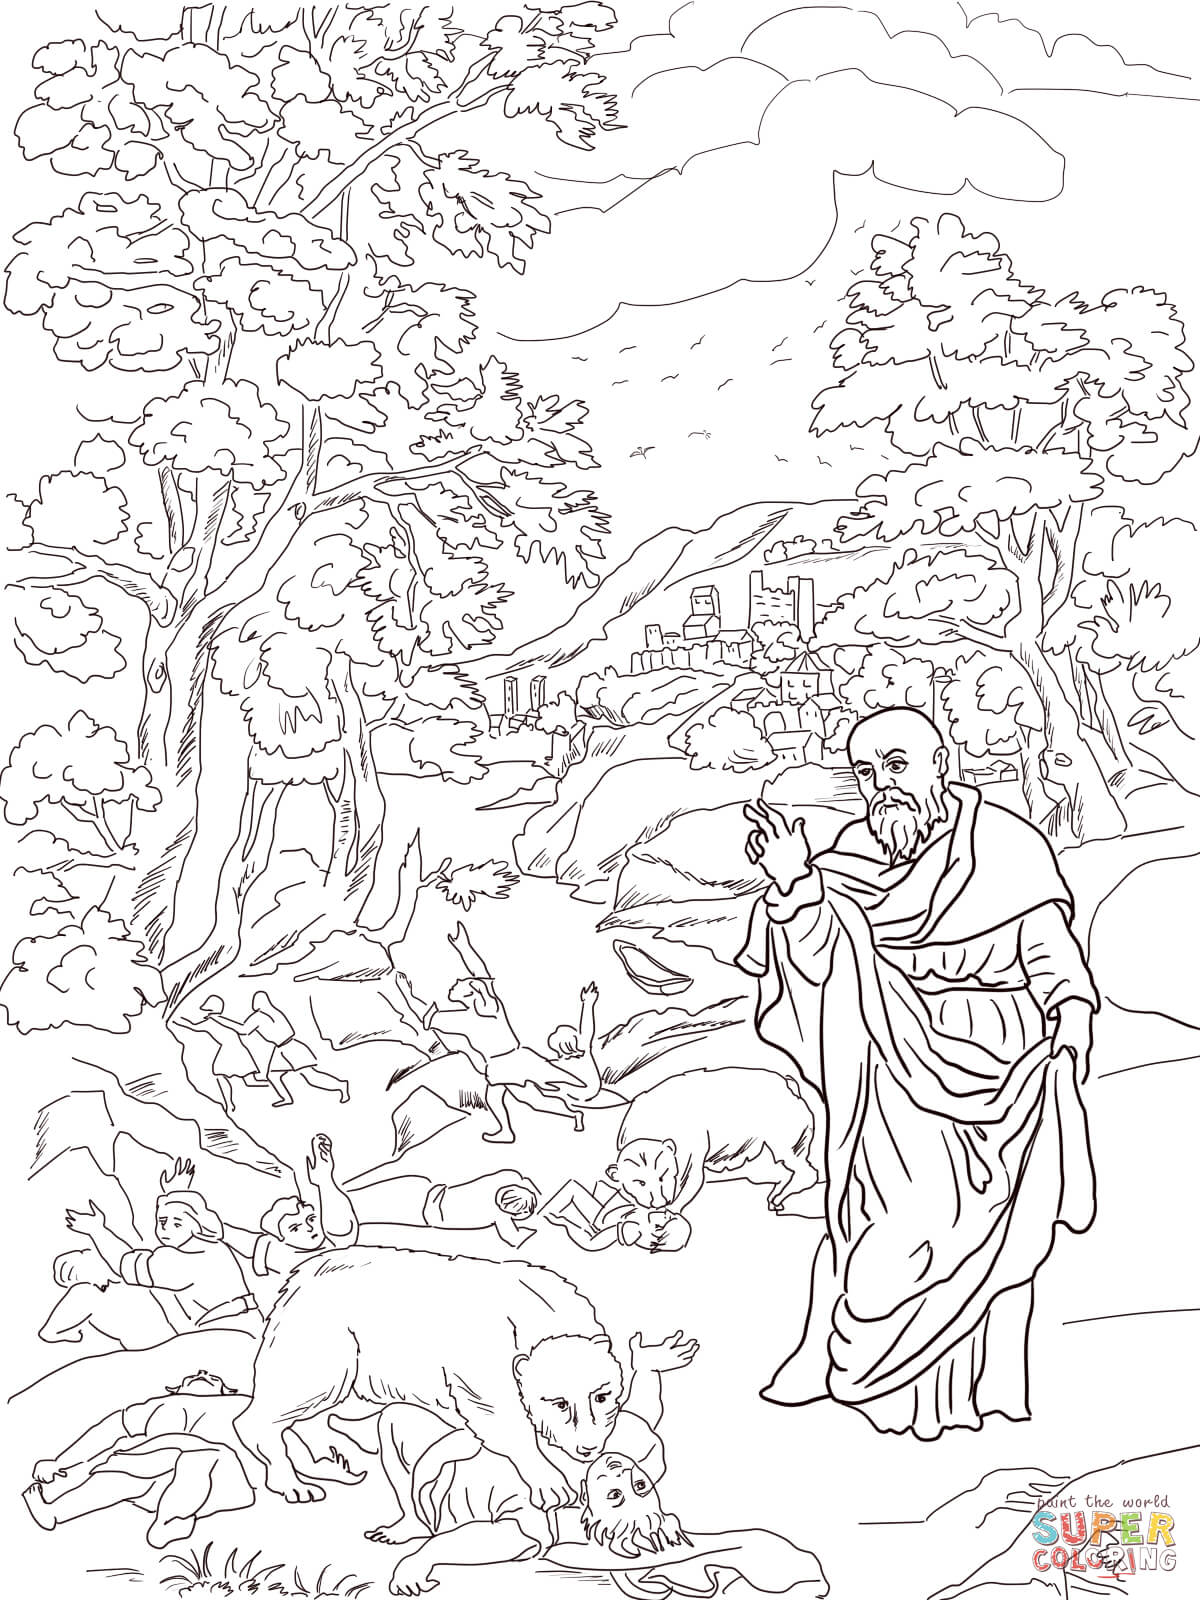 Elisha Coloring Pages Az Coloring Pages Elisha Coloring Pages